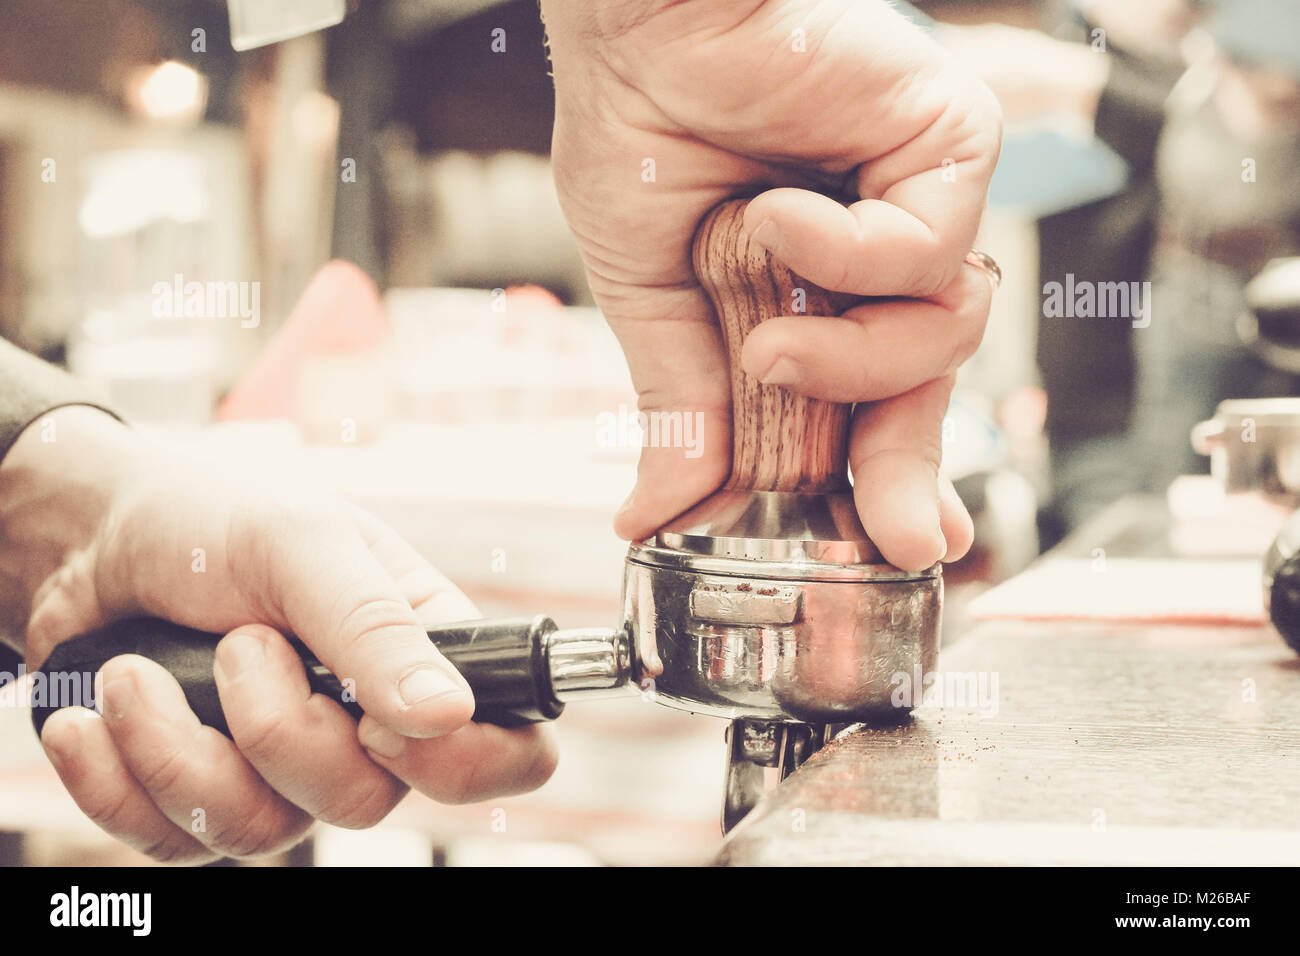 Barista presses ground coffee using tamper. Shallow depth of field, pastel color toning Stock Photo